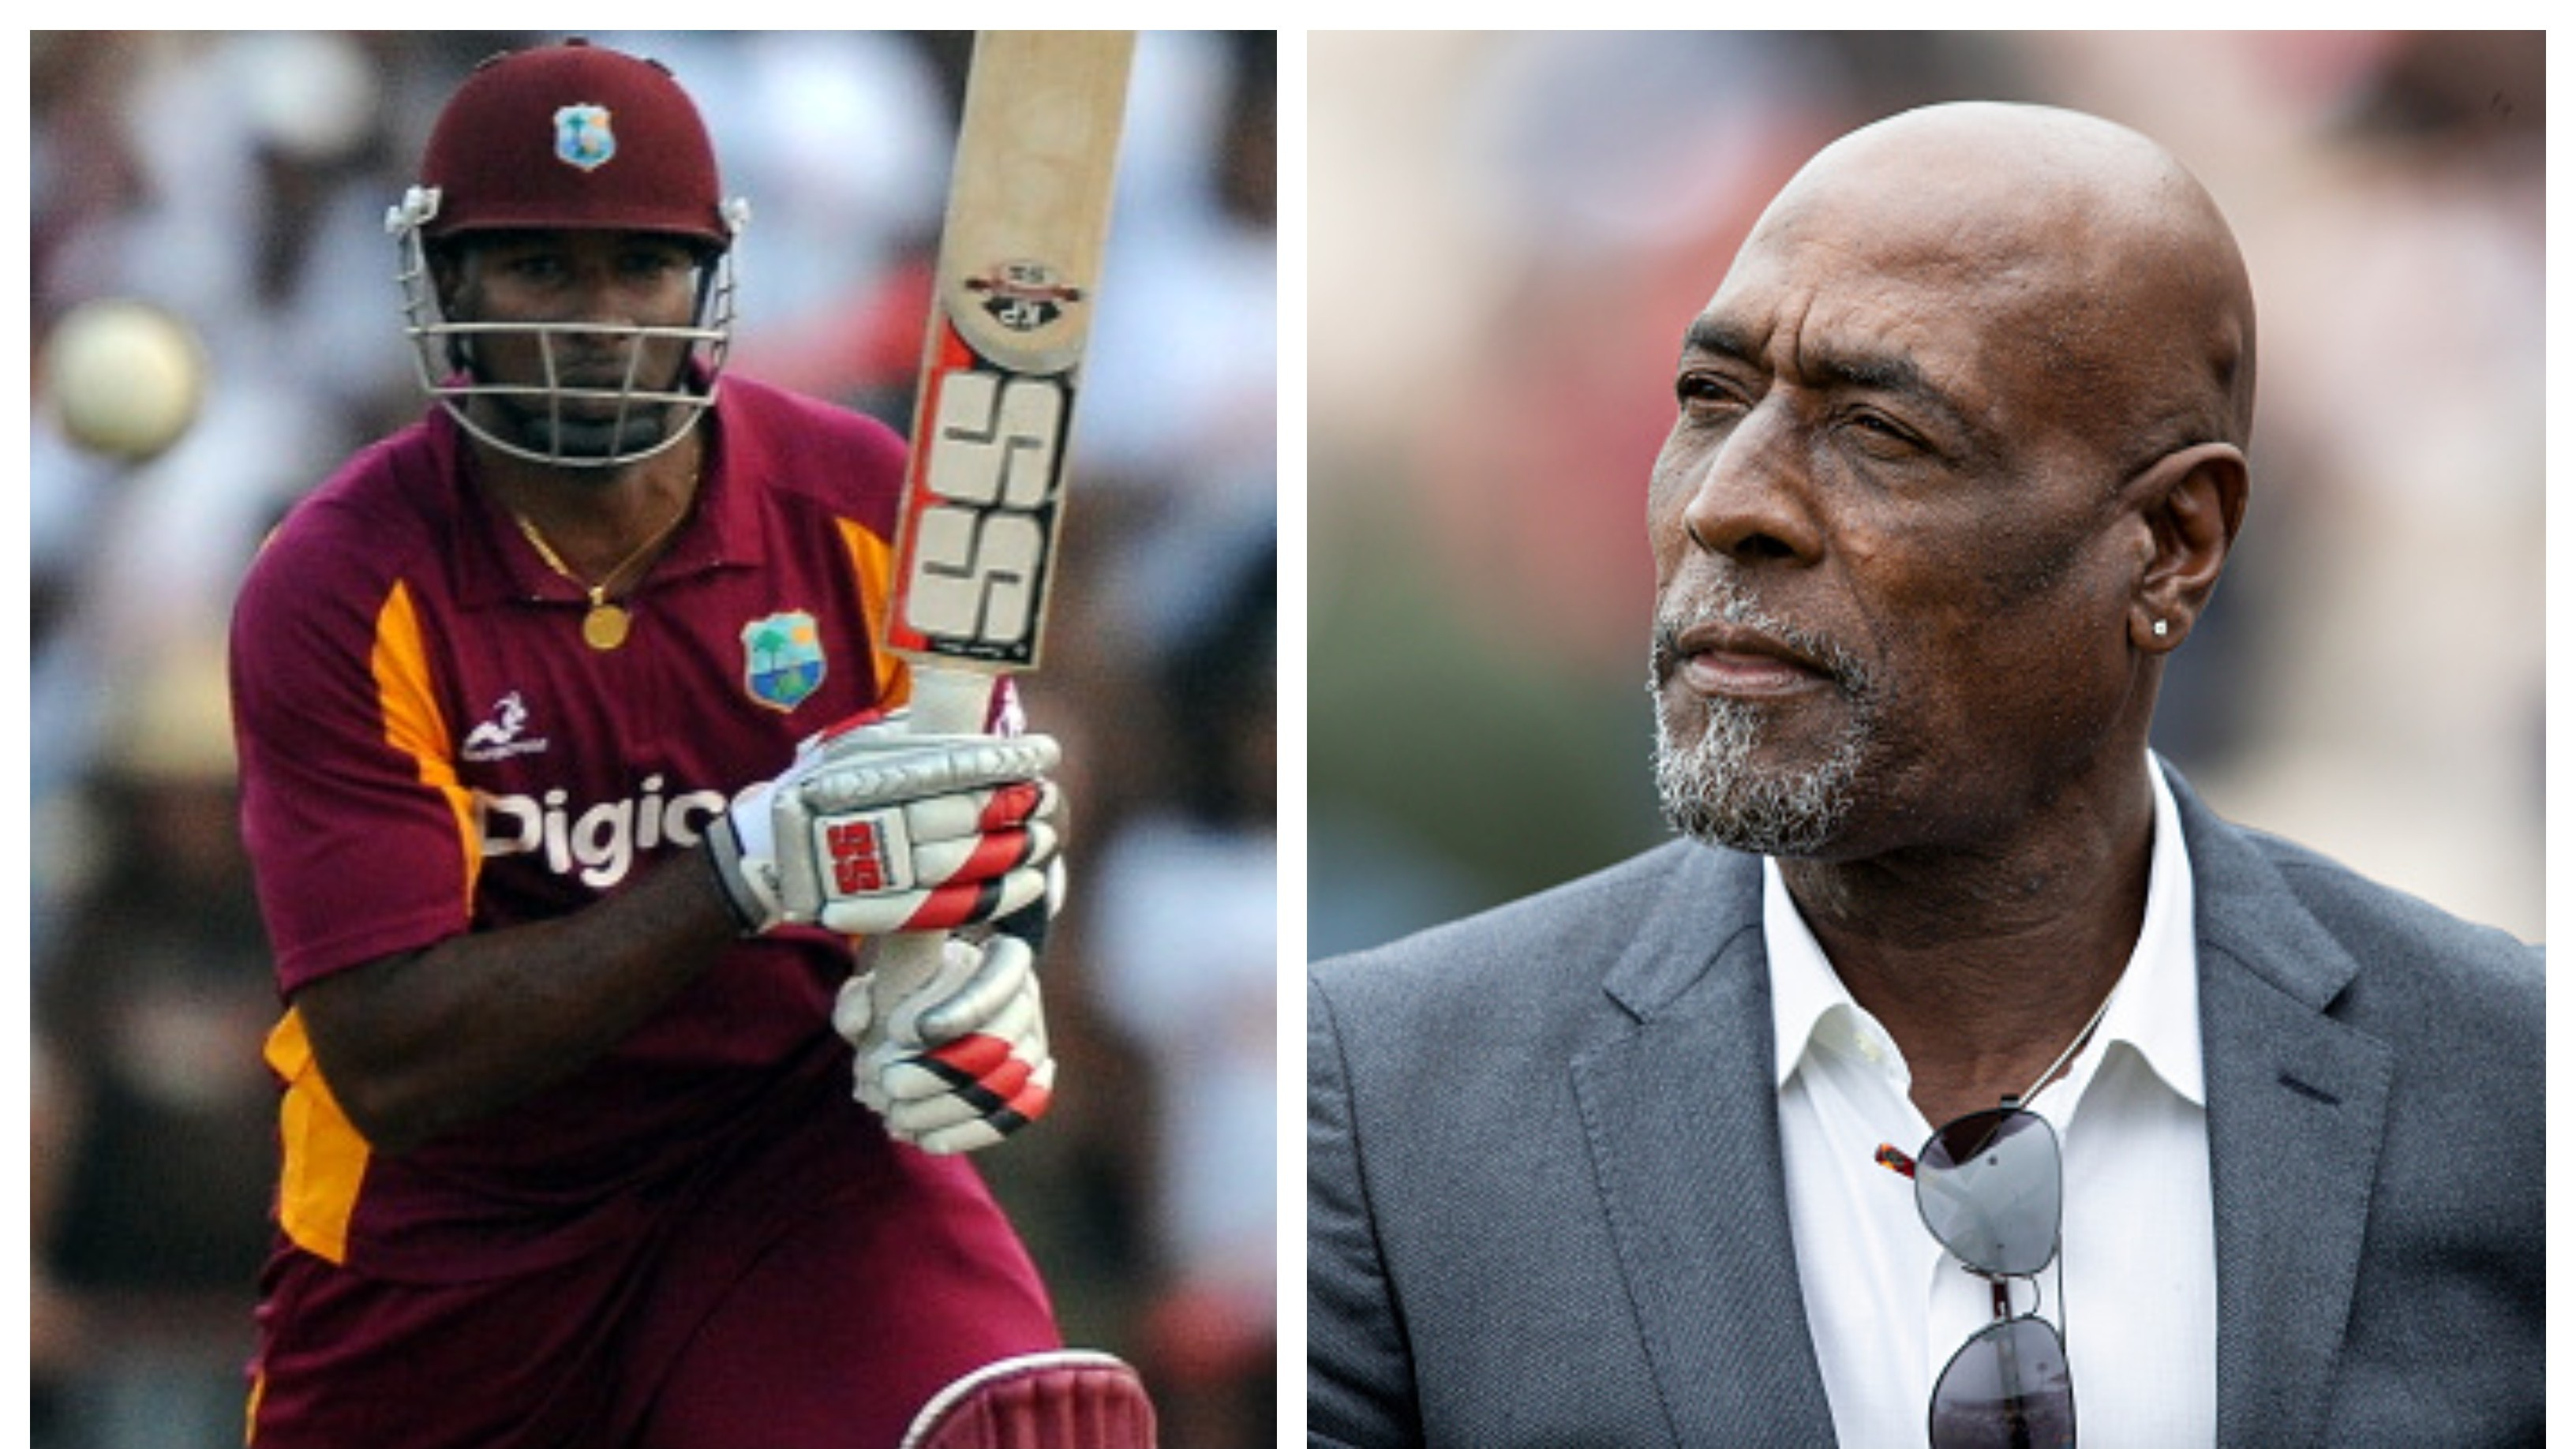 AFG v WI 2019: Sir Vivian Richards heaps praise on new West Indies captain Kieron Pollard